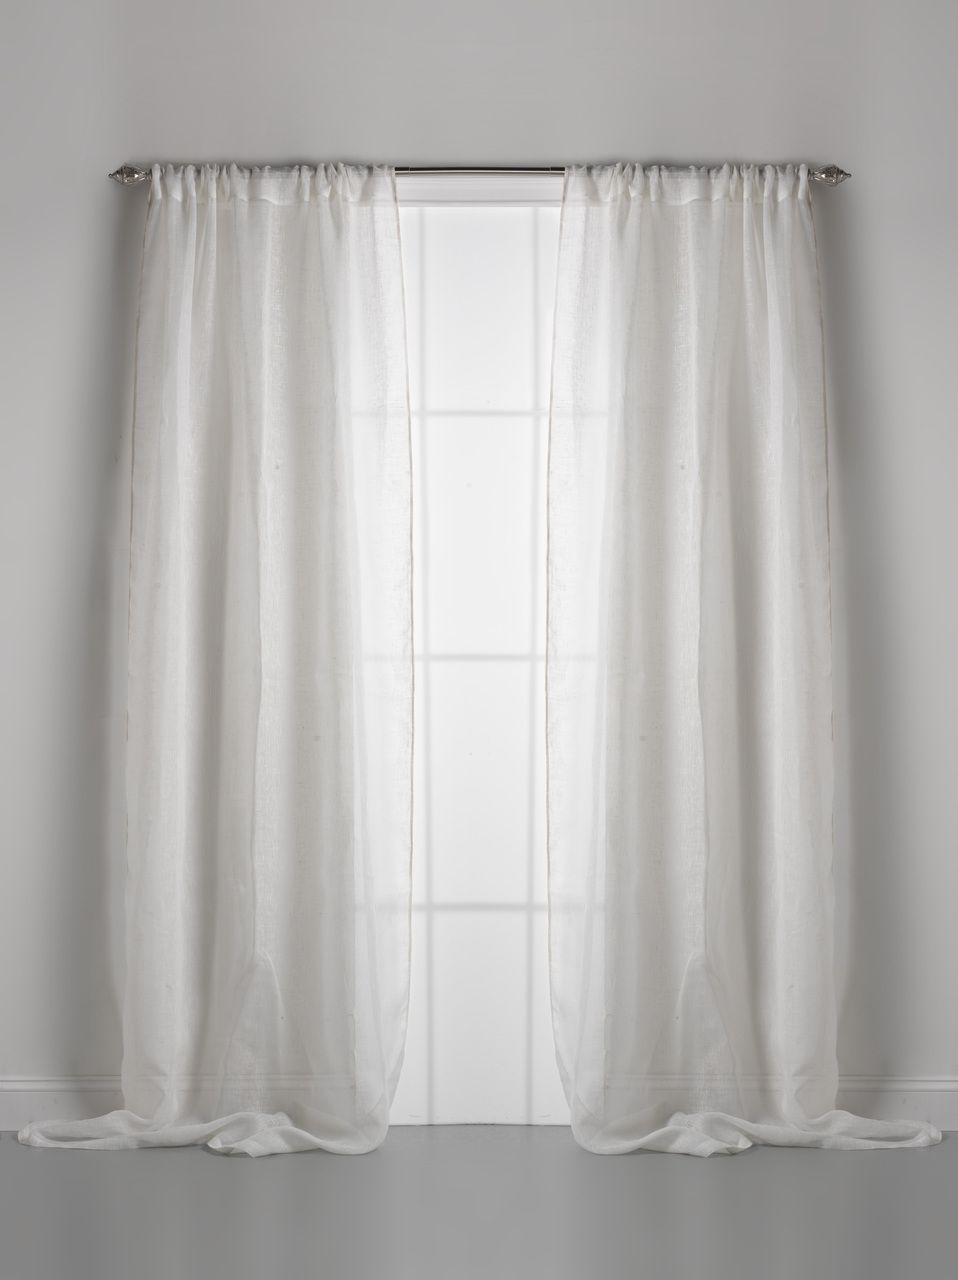 Sheepskin Couture Dreams Solid Linen Gauze Window Curtain